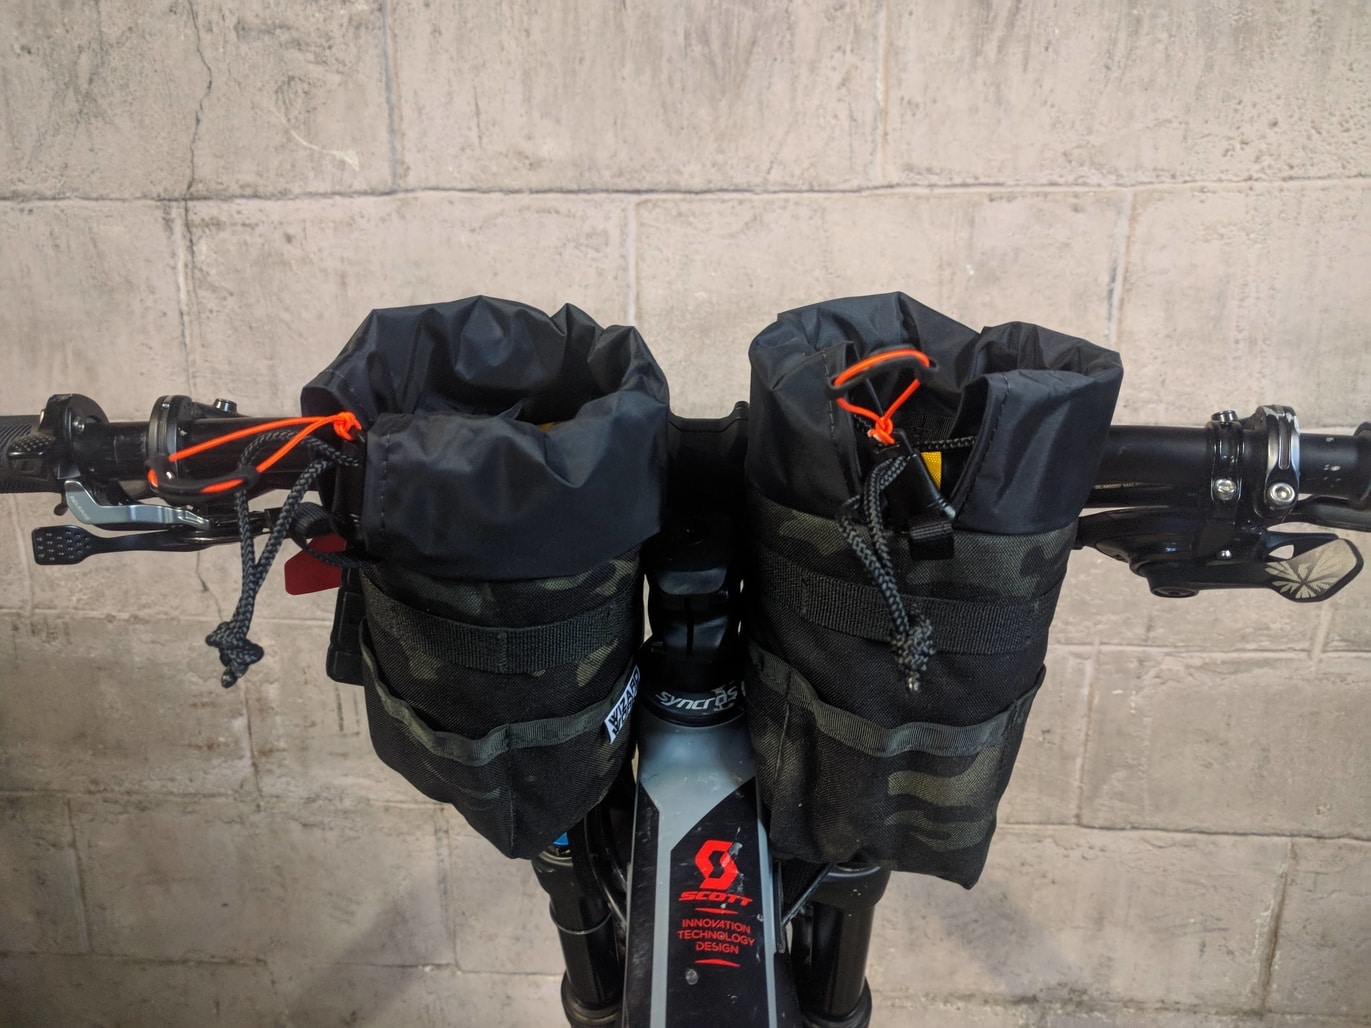 Bikepacking feedbags Wizard works